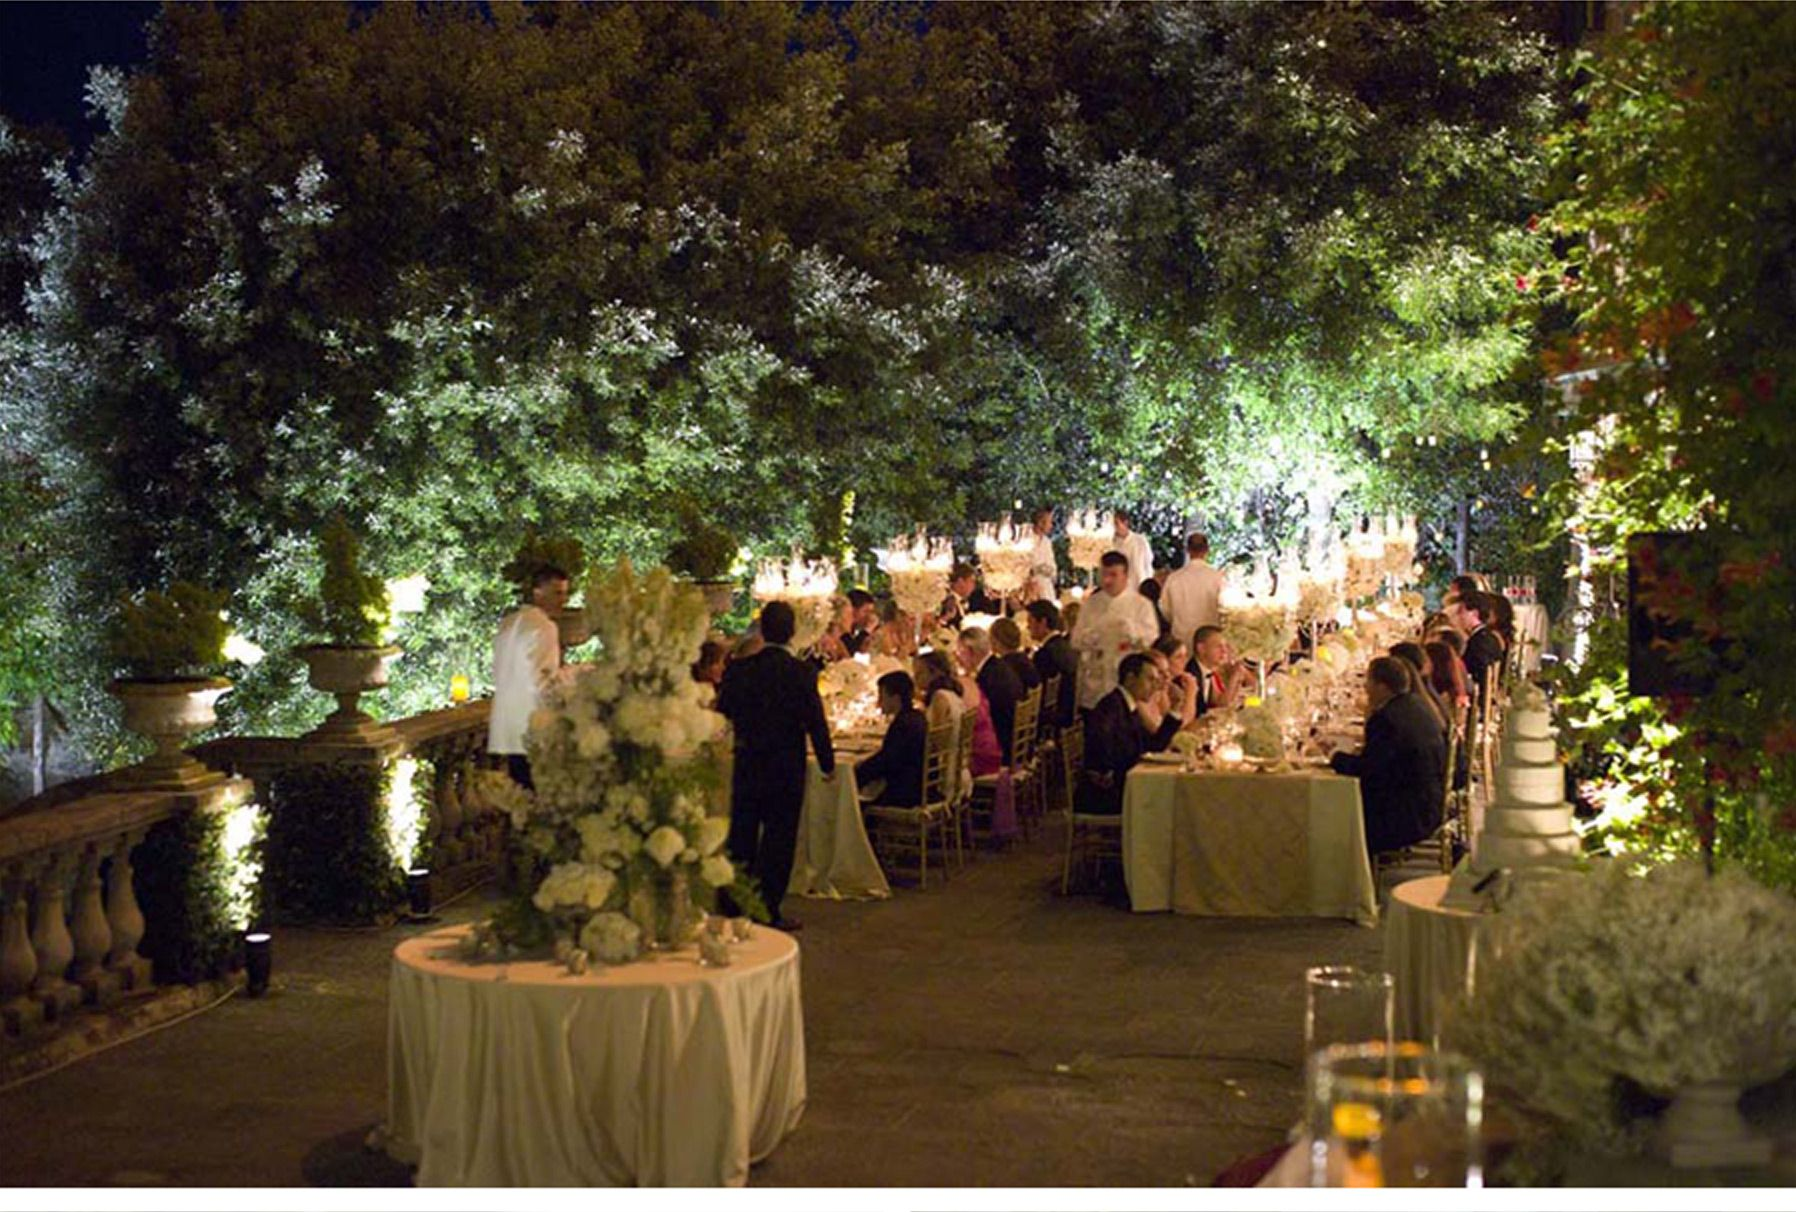 A Romantic Enchanting Italian Wedding In The Umbrian: Can You Imagine A More Enchanting/romantic Setting